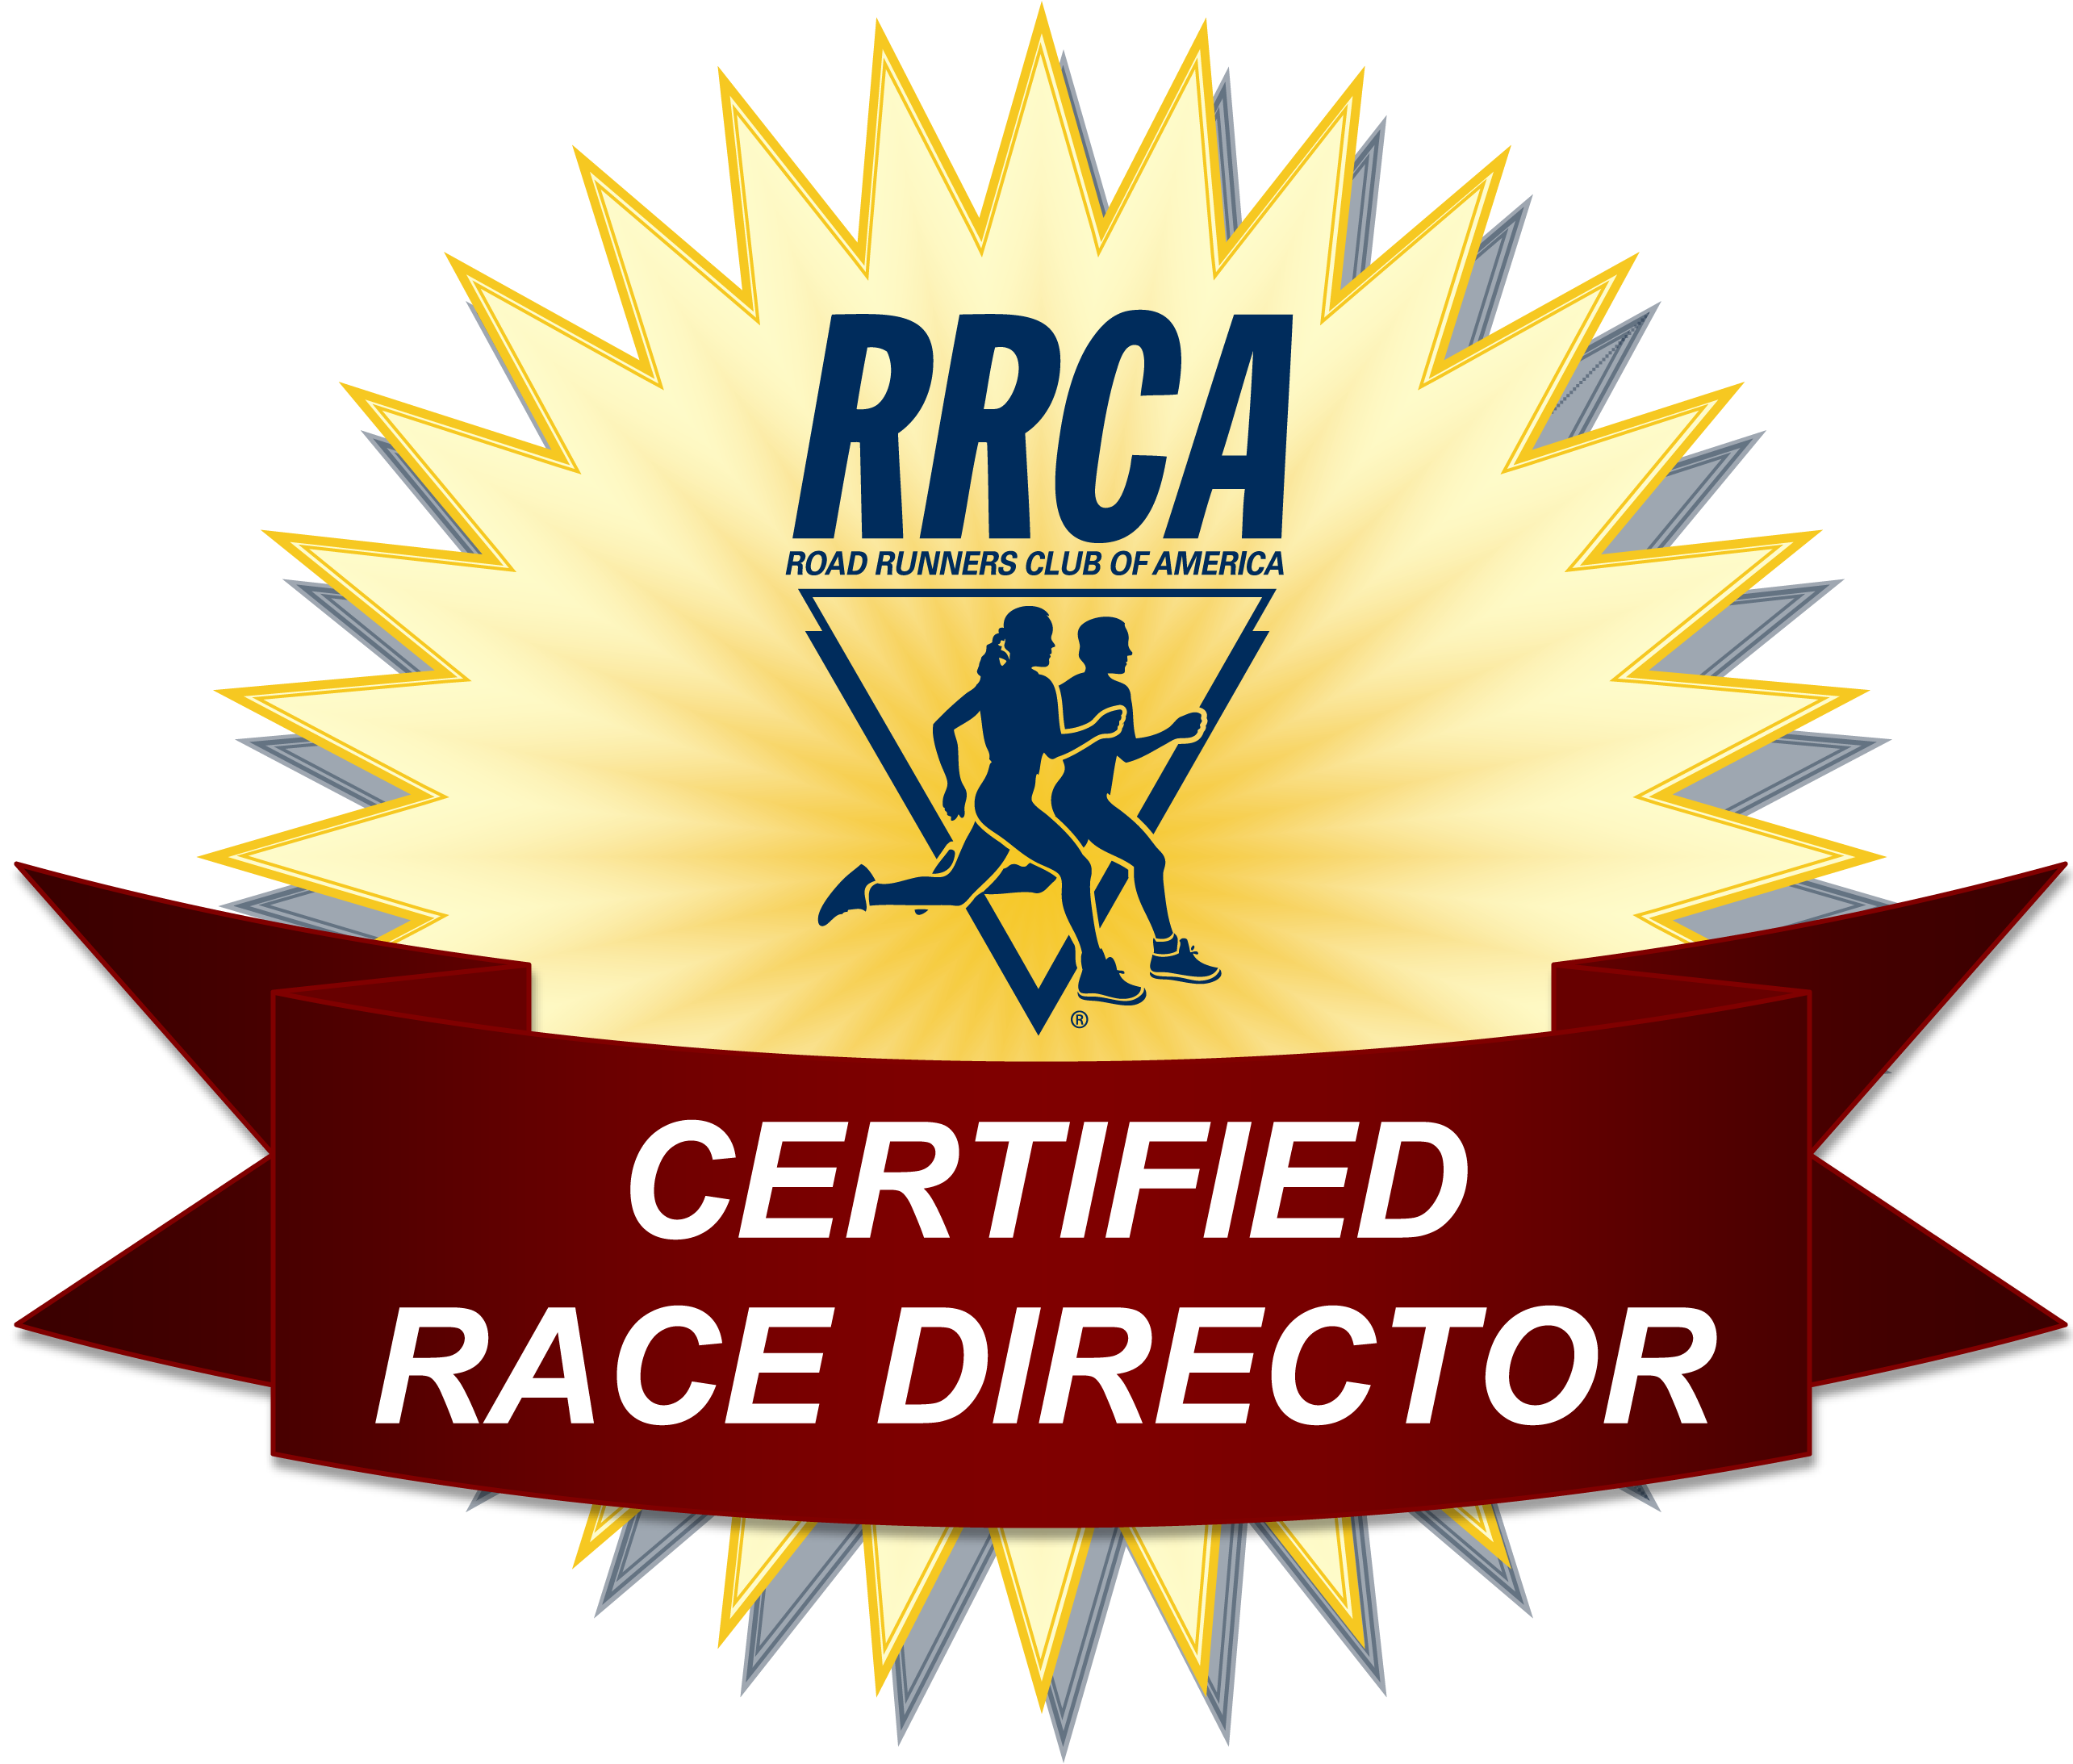 Contact Race Director